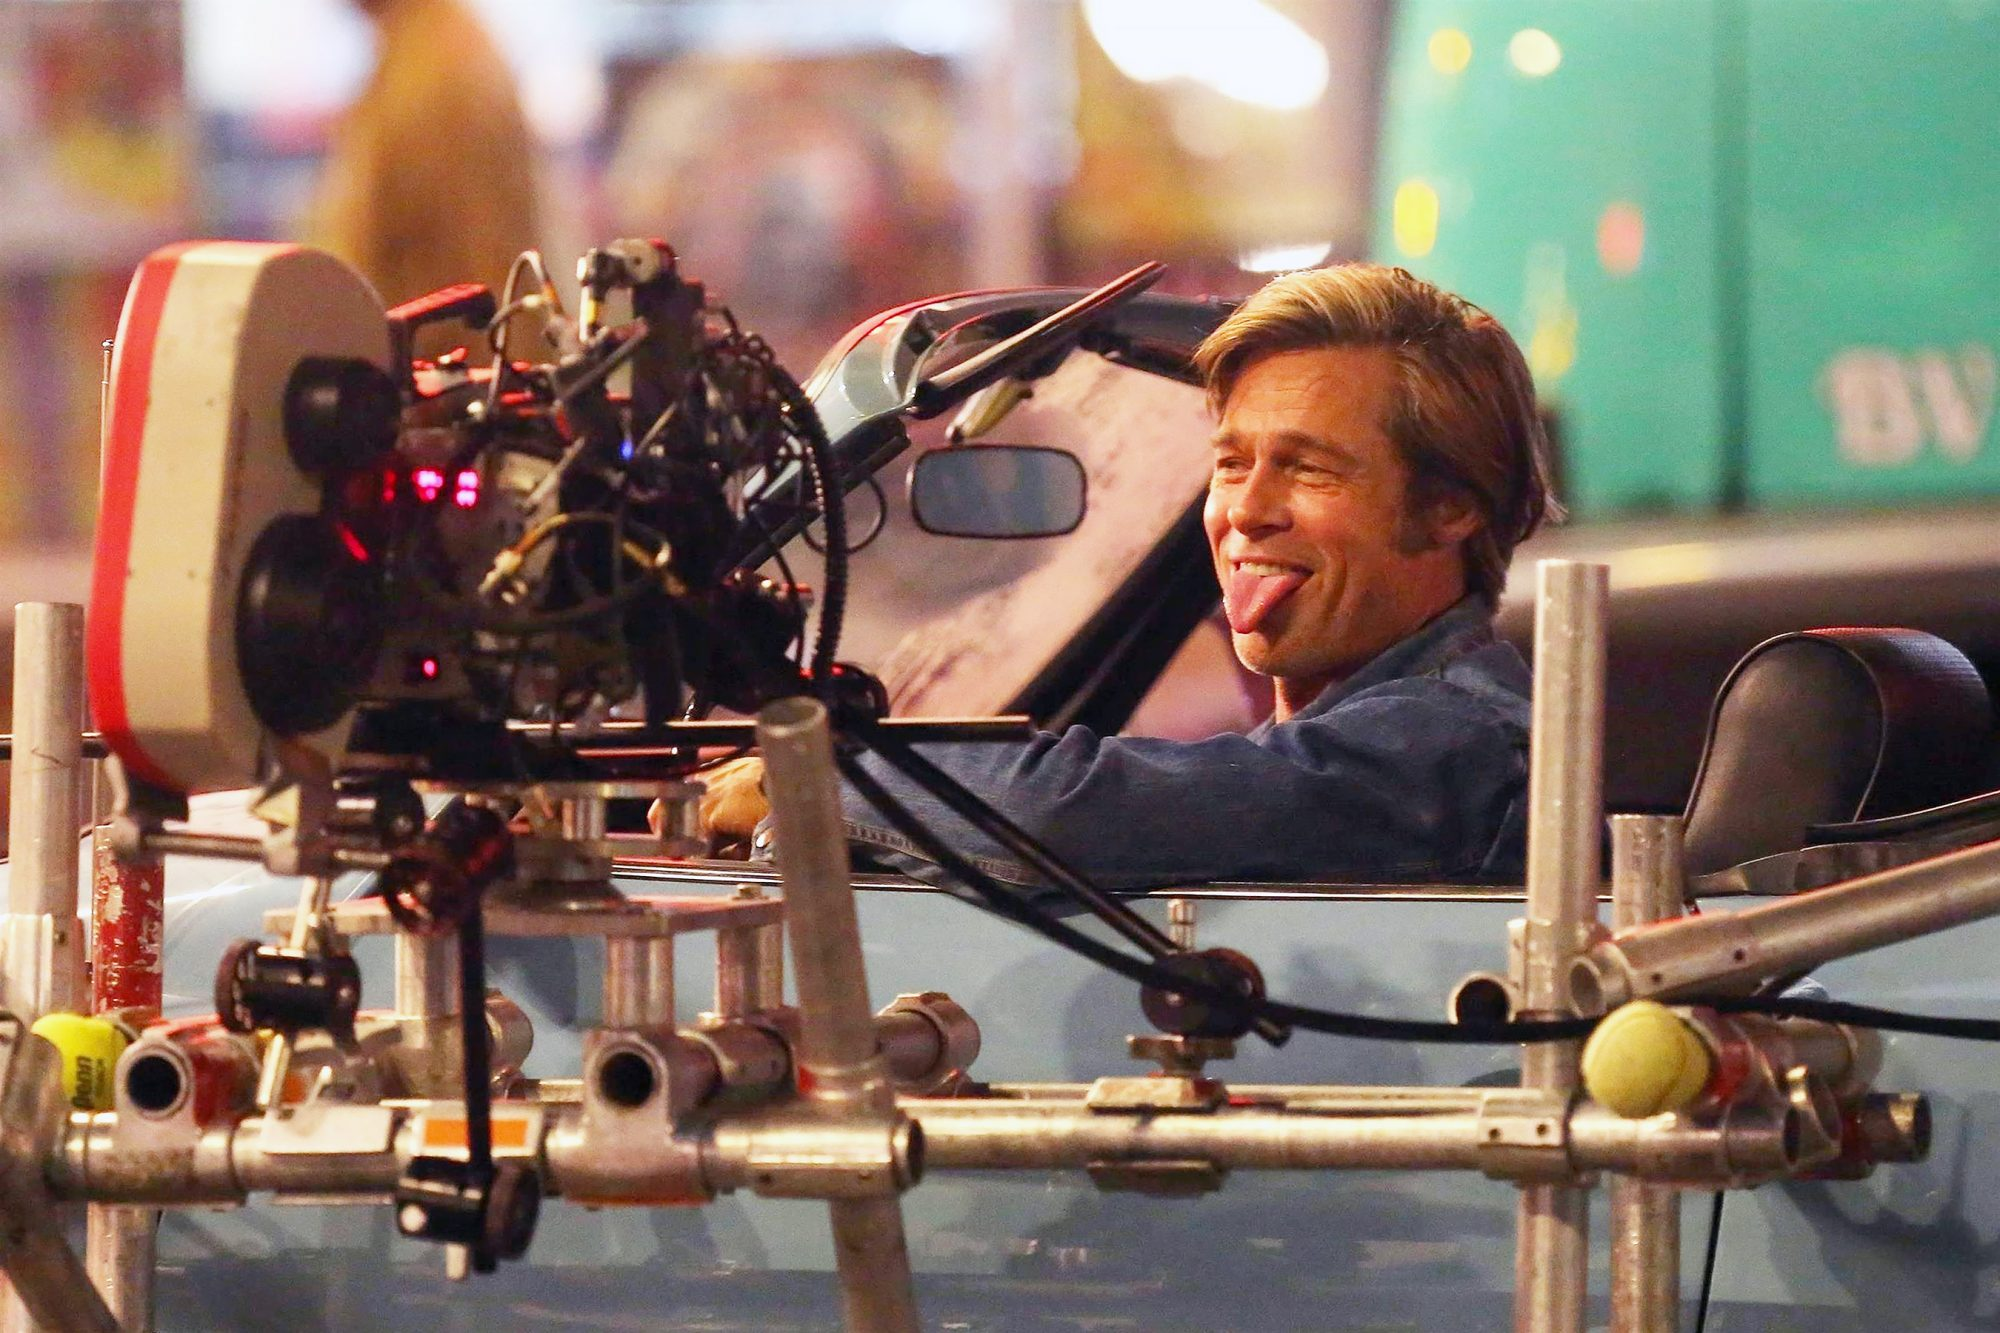 Brad Pitt and Leonardo DiCaprio back on the set of 'Once Upon a Time in Hollywood' in LA